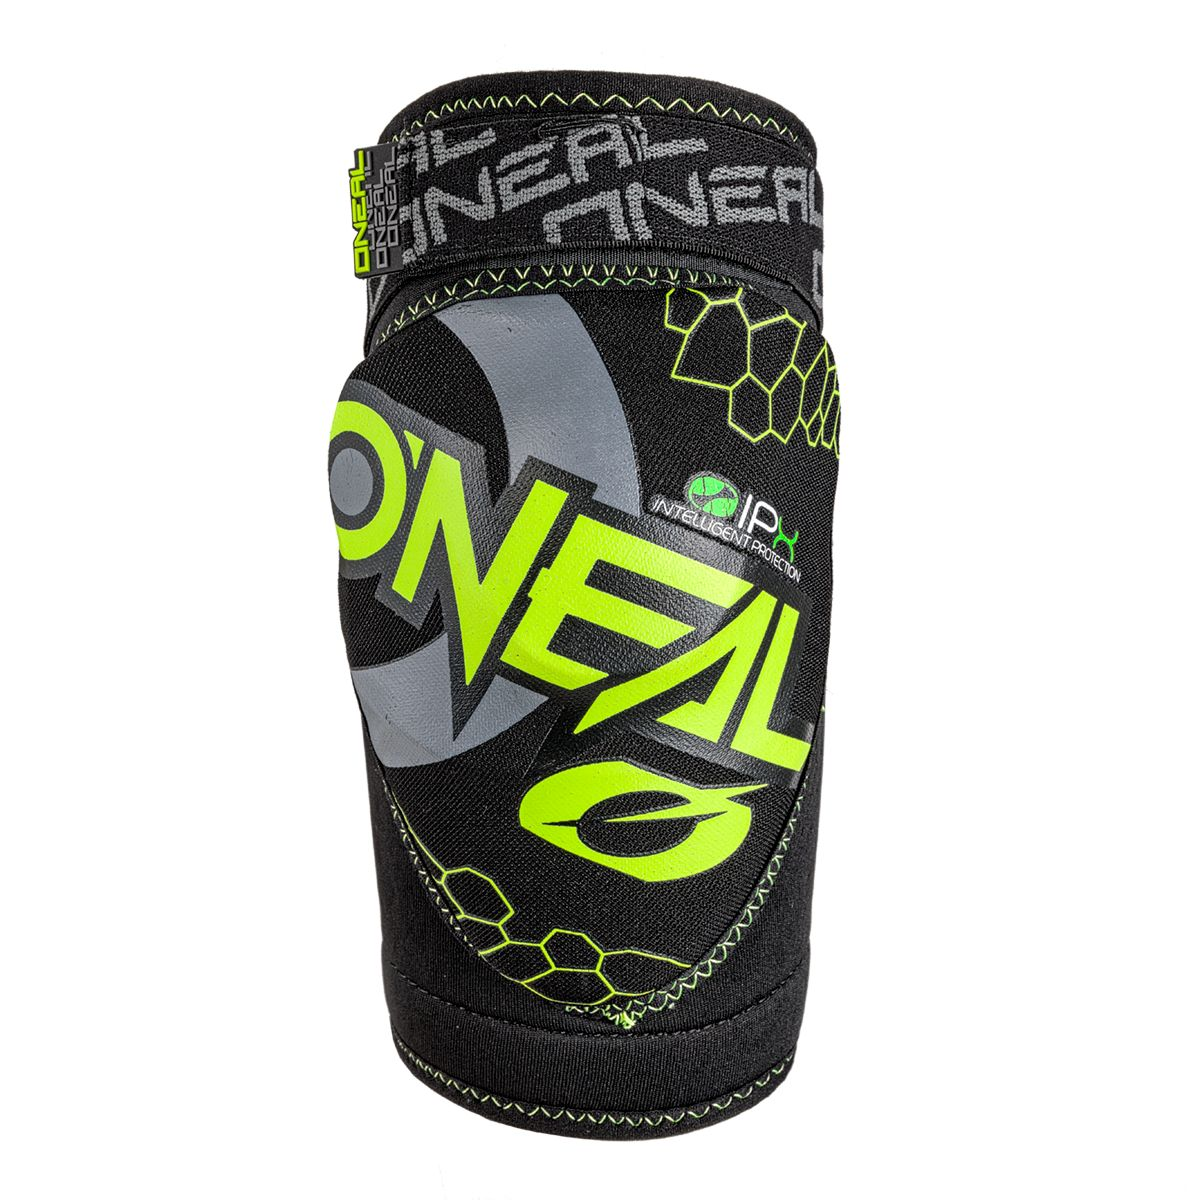 DIRT YOUTH KNEE GUARD kniebeschermers